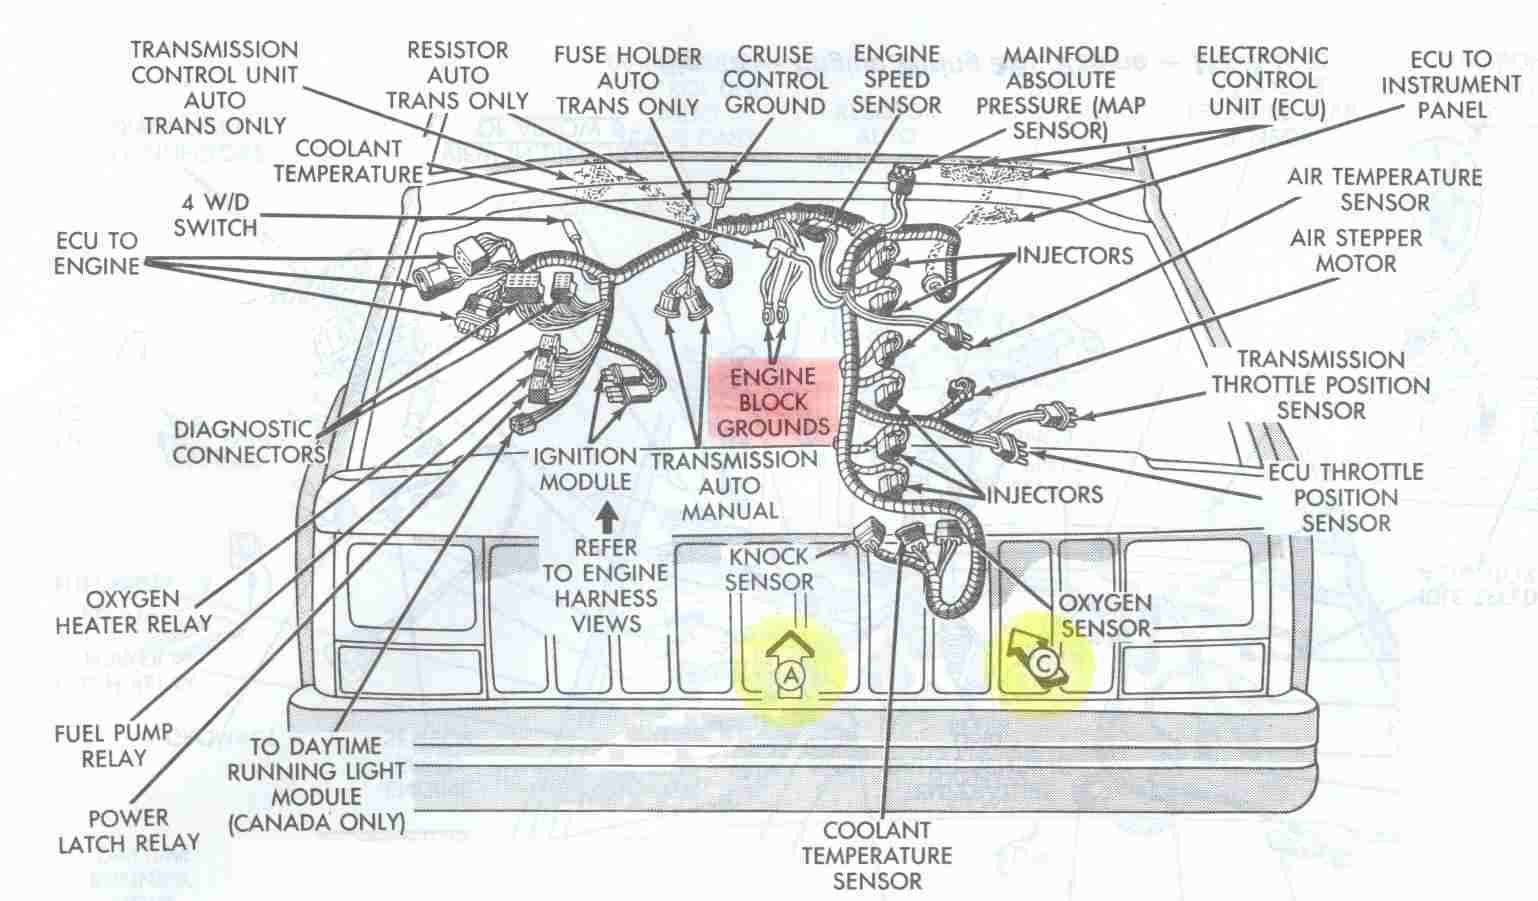 ab0134a7d9e021431187af597eb4aeca engine bay schematic showing major electrical ground points for wiring diagram 2000 jeep cherokee at fashall.co